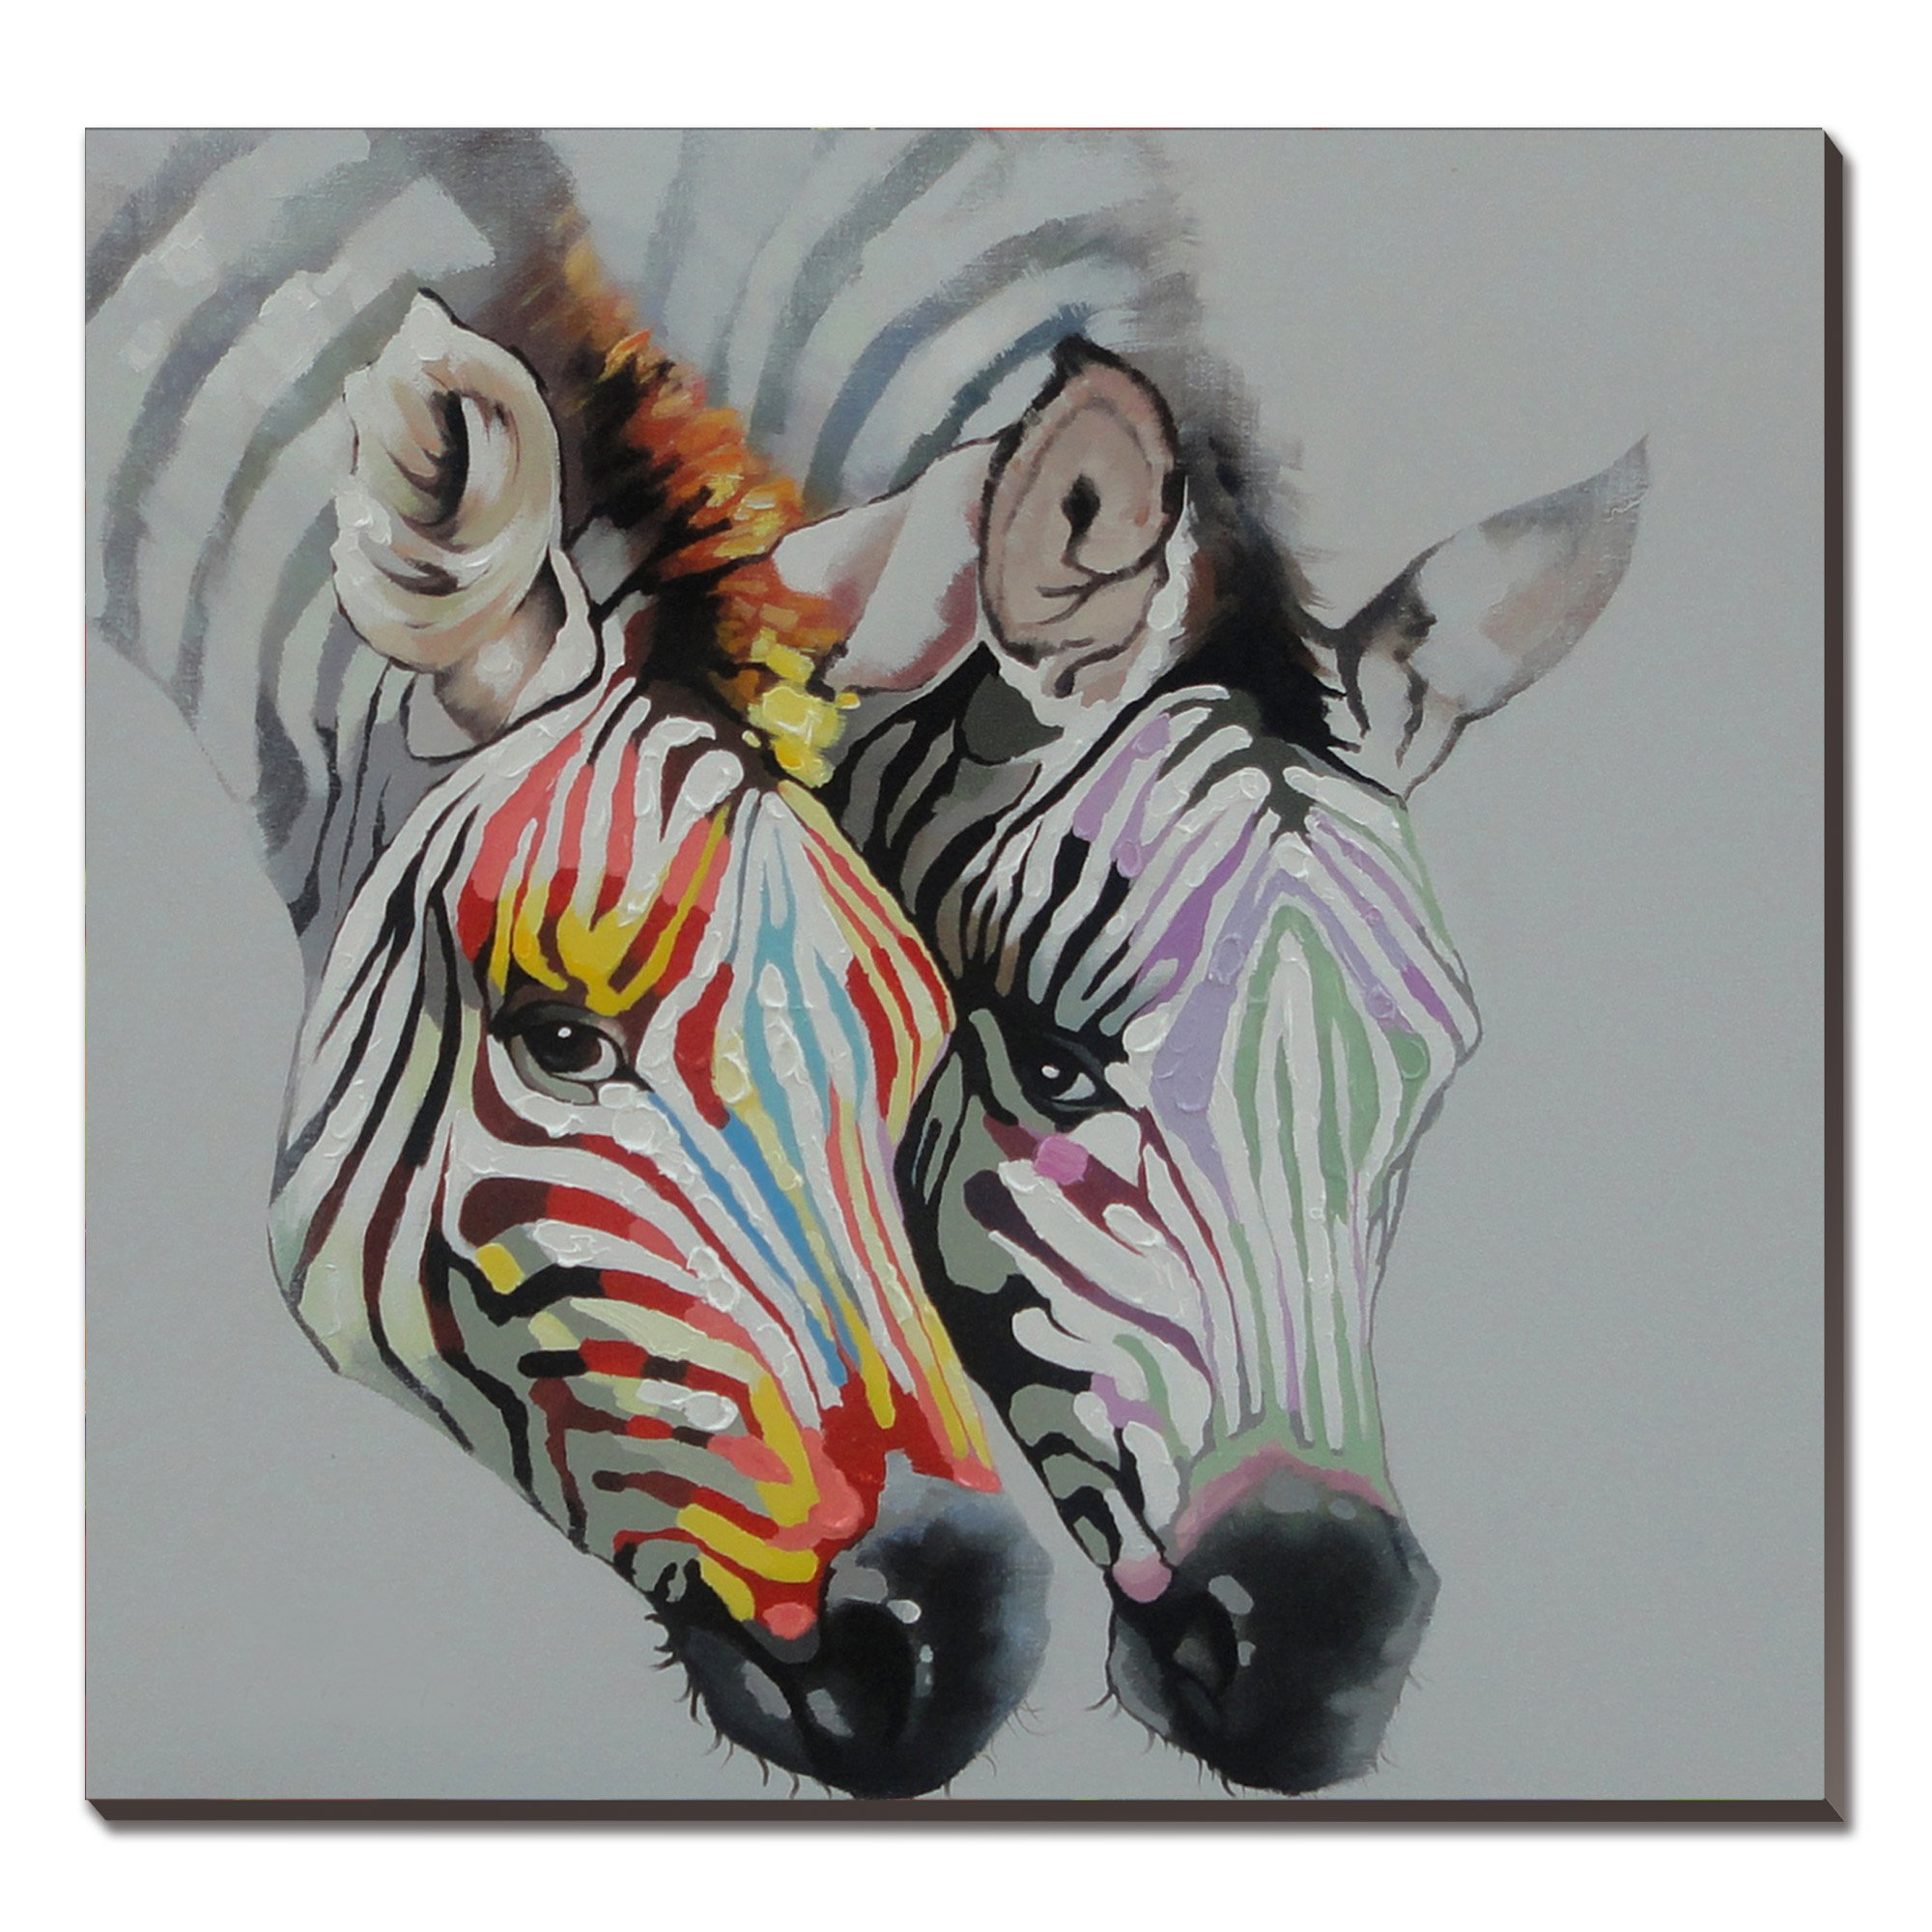 3Hdeko-Zebra Oil Painting on Canvas 30x30inch Gray Animal Artwork Home Decor for Living Room- Ready to hang!